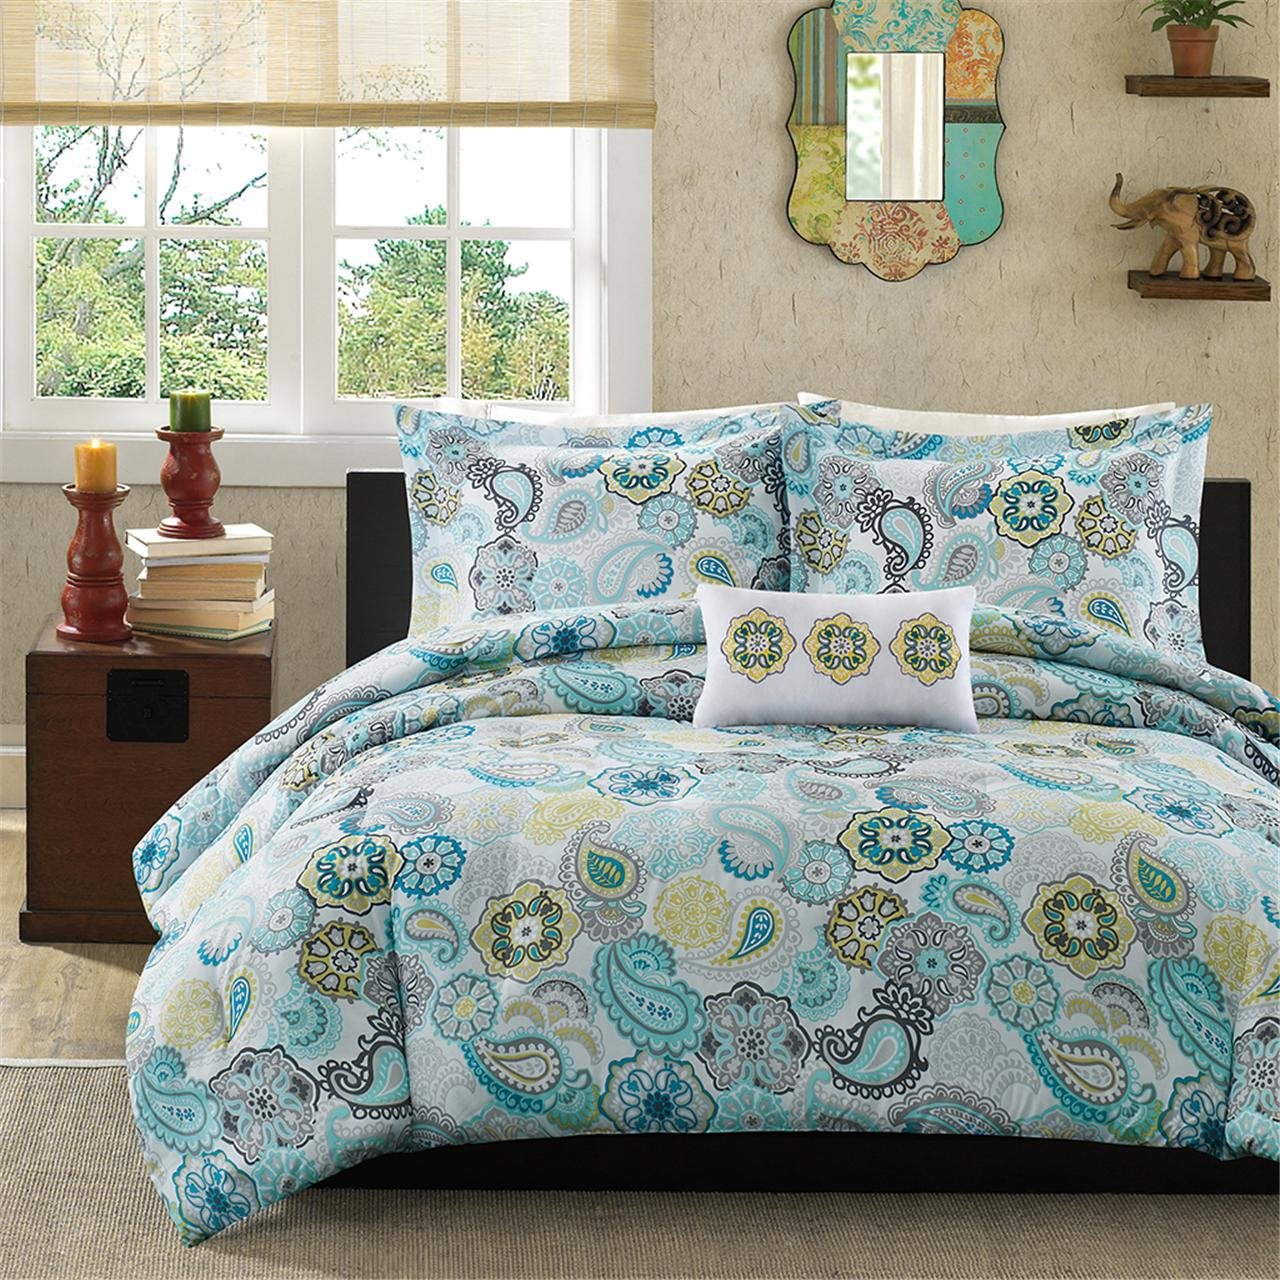 Yellow and gray floral bedding - Queen 4 Piece Paisley Comforter Set Blue Flowers Floral Yellow Gray Moroccan Teal Aqua Queen